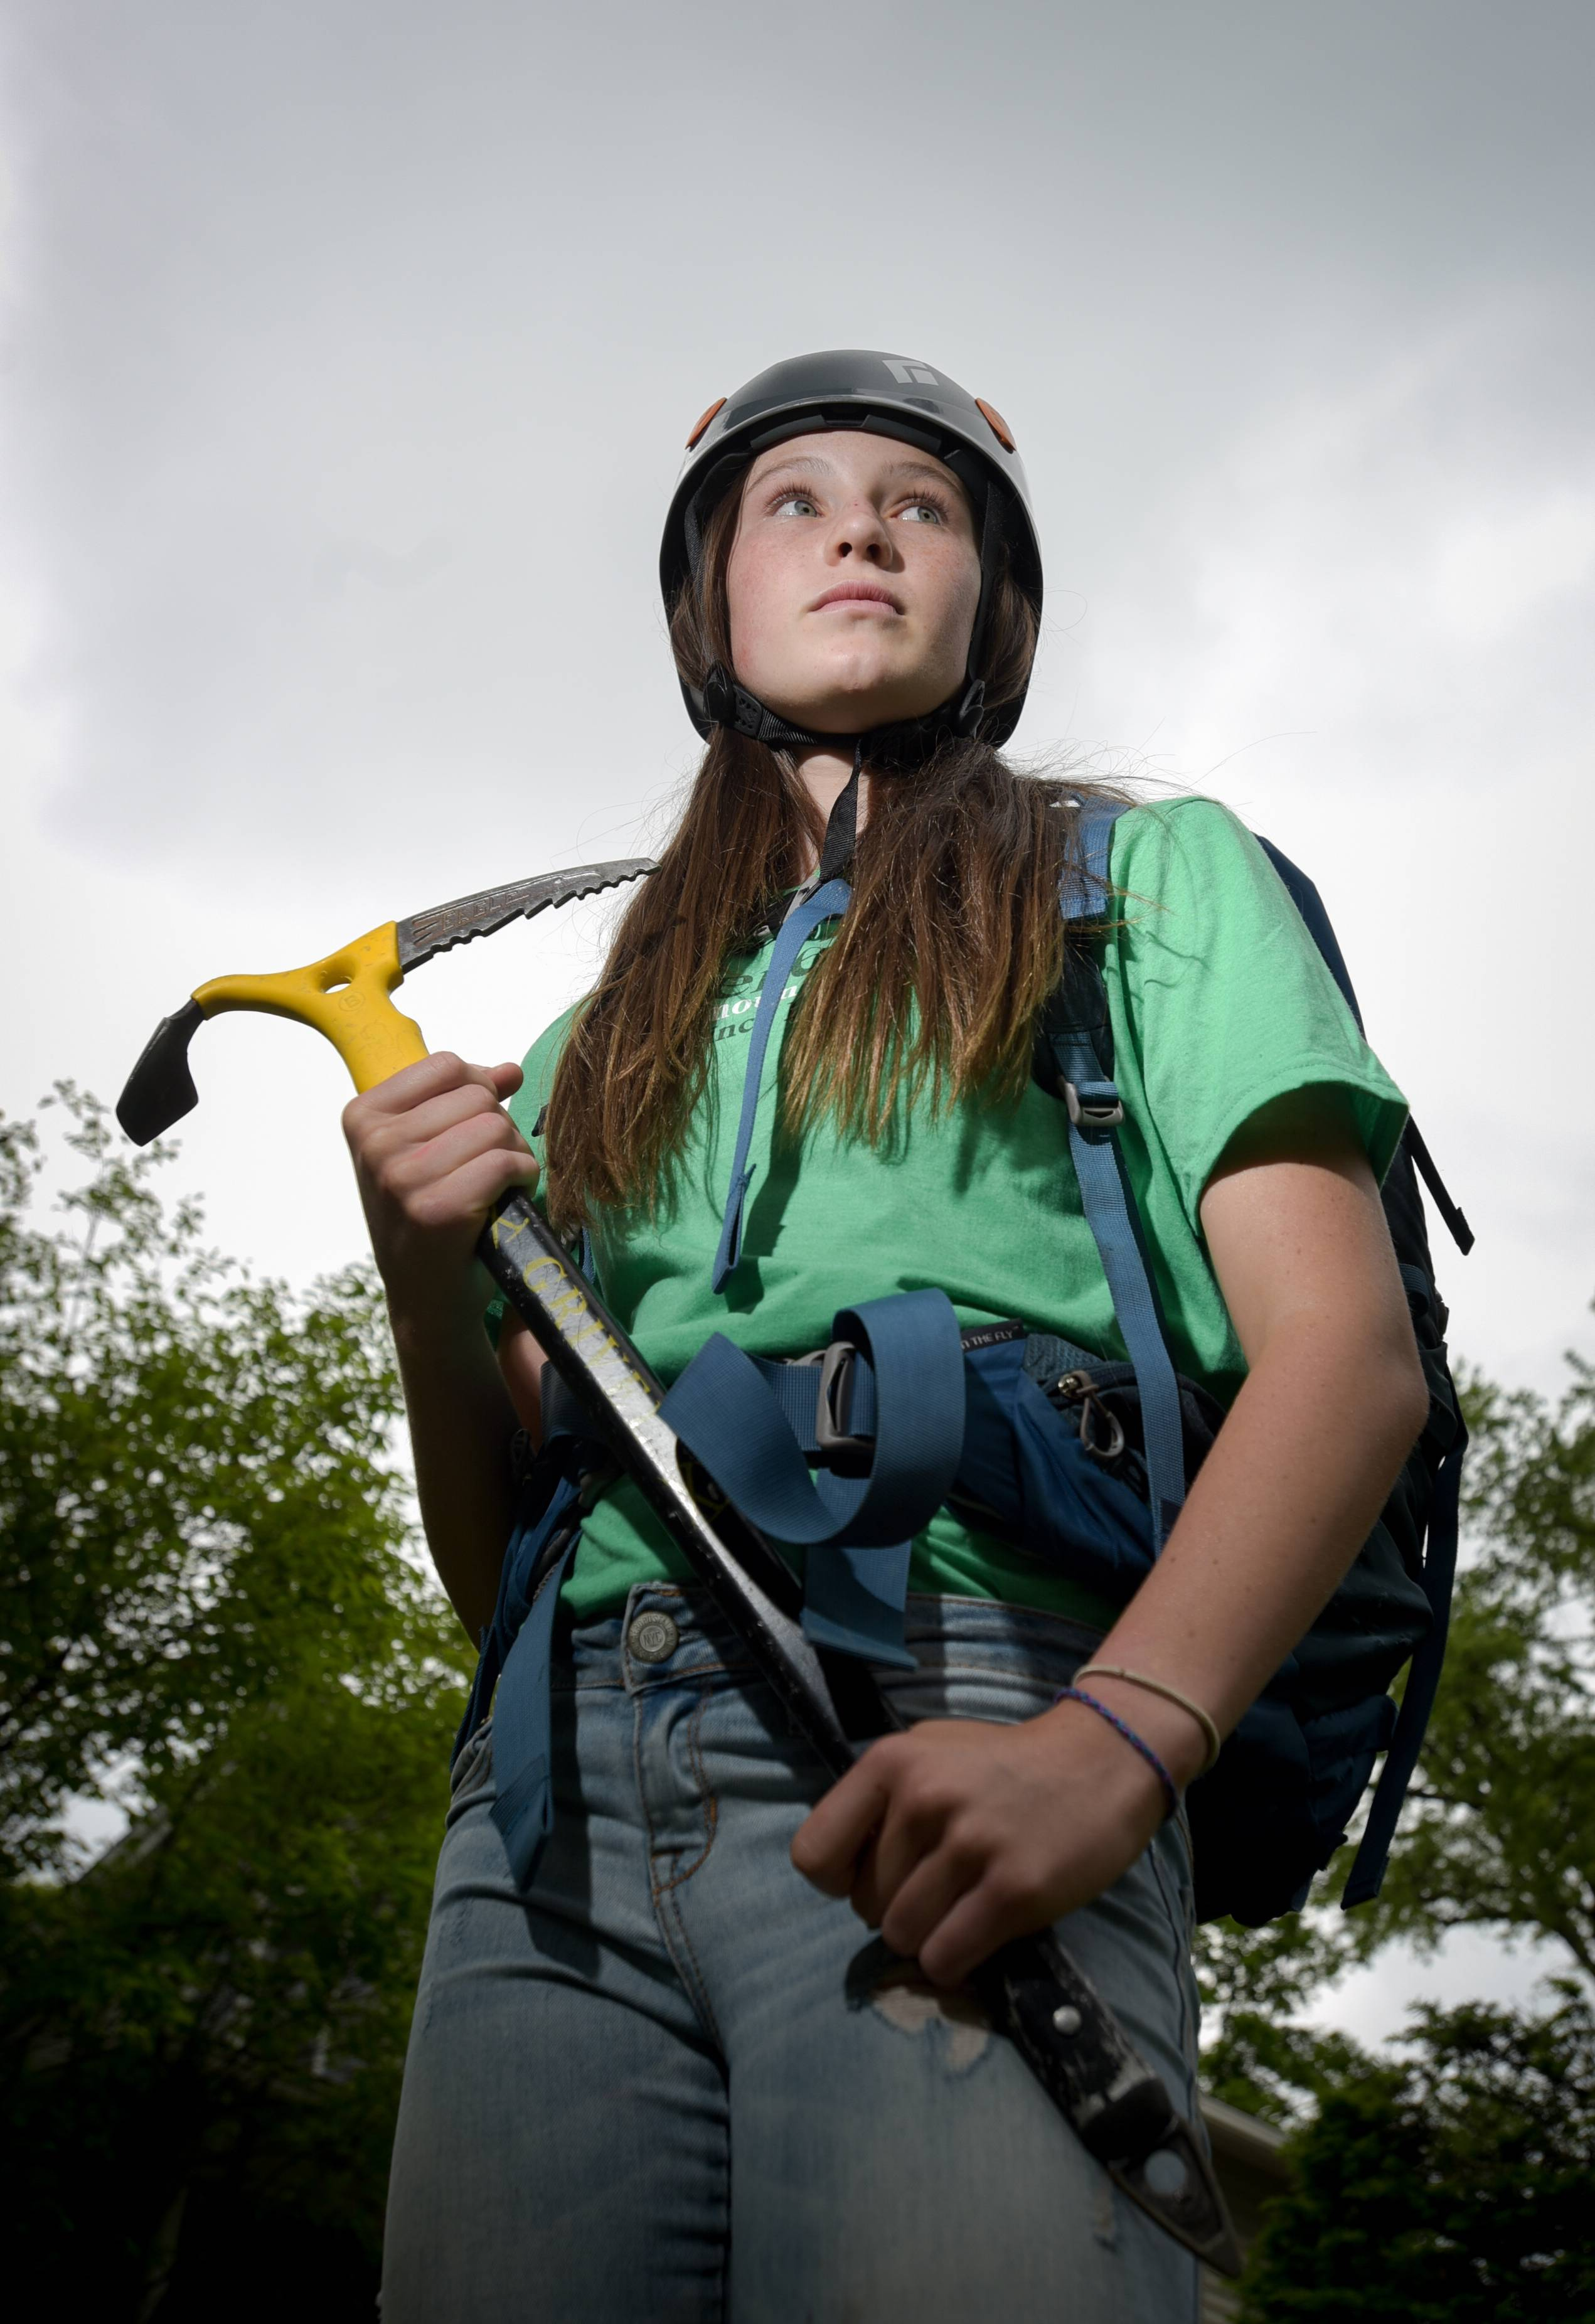 Lucy Westlake, 13, of Naperville, could become the youngest girl to climb to the highest point in all 50 states this summer if she reaches the summit of Mount Denali in Alaska.